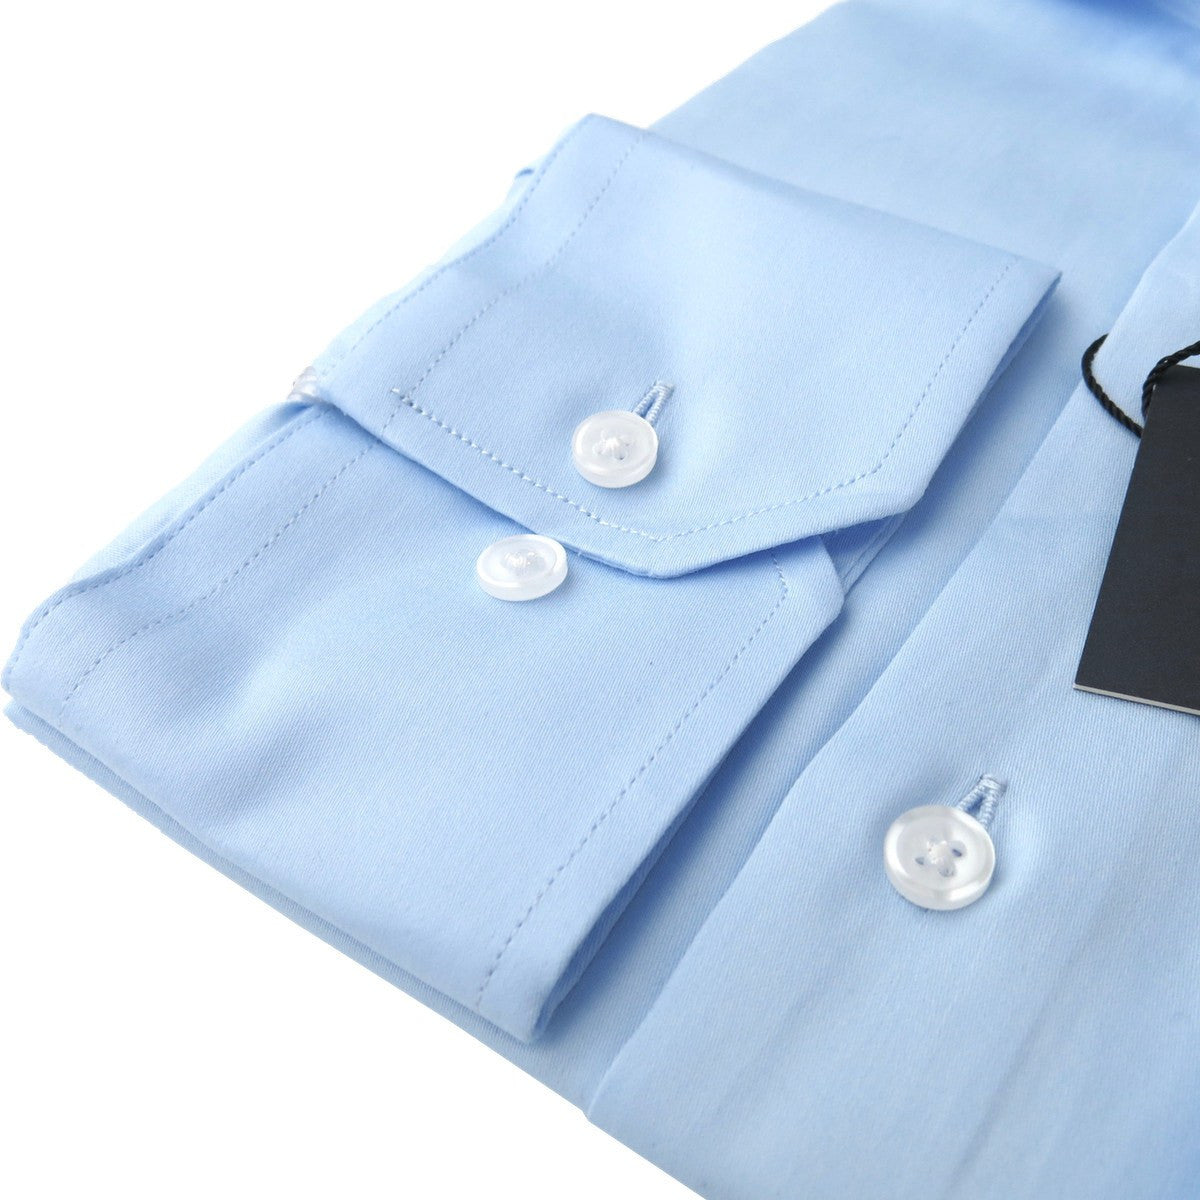 Dandy son extreme cutaway collar slim fit shirts for Wide spread collar shirt